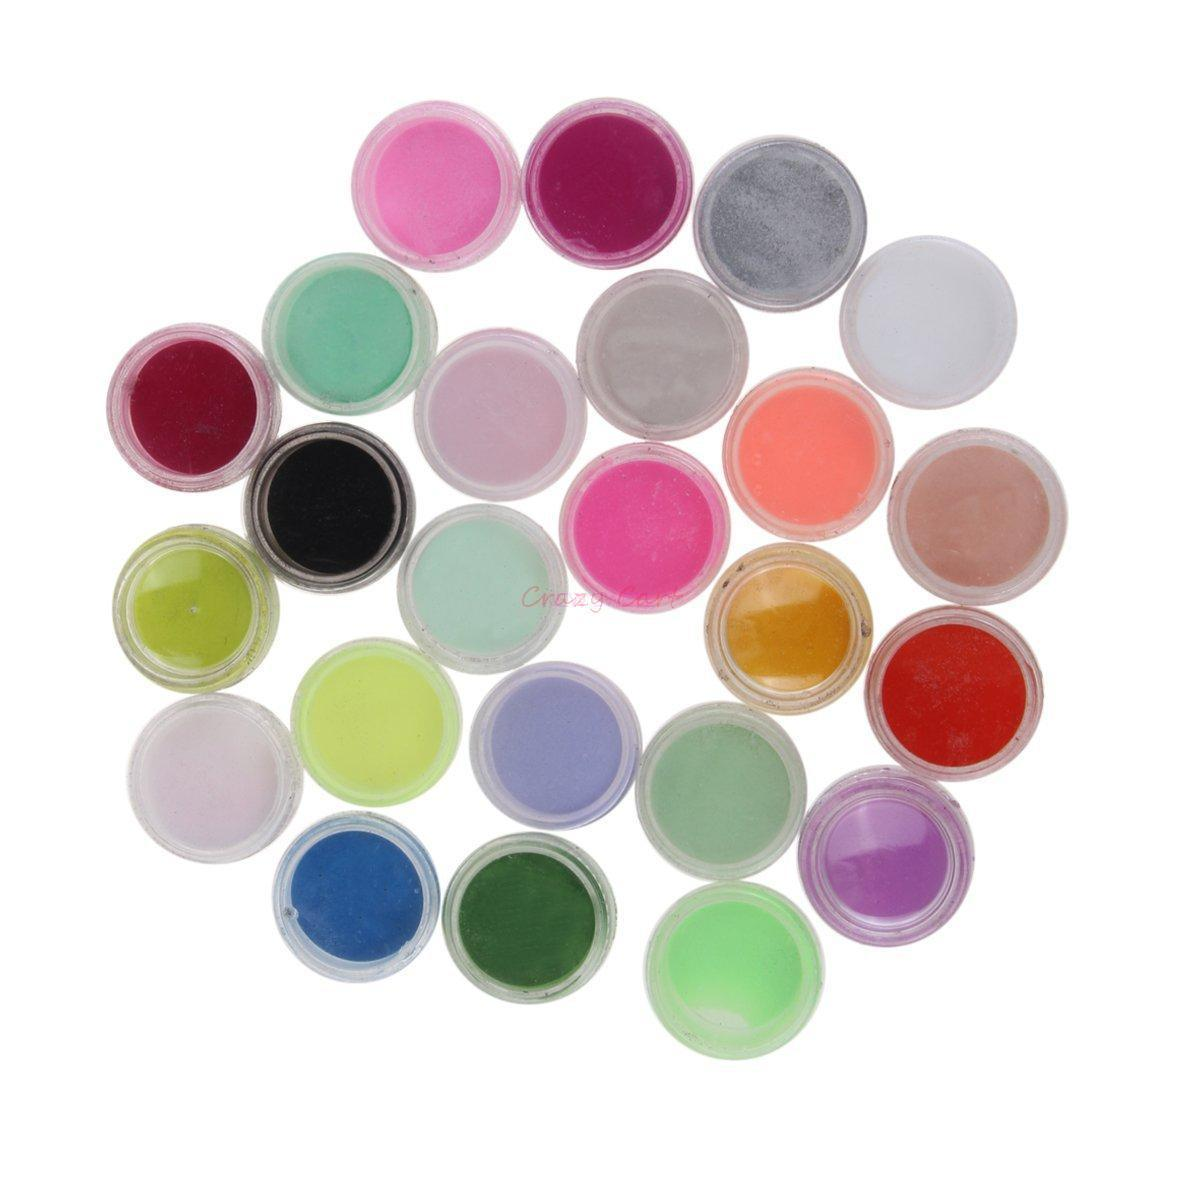 Acrylic powder dust nail art decoration nail supply store for Acrylic nail decoration supplies